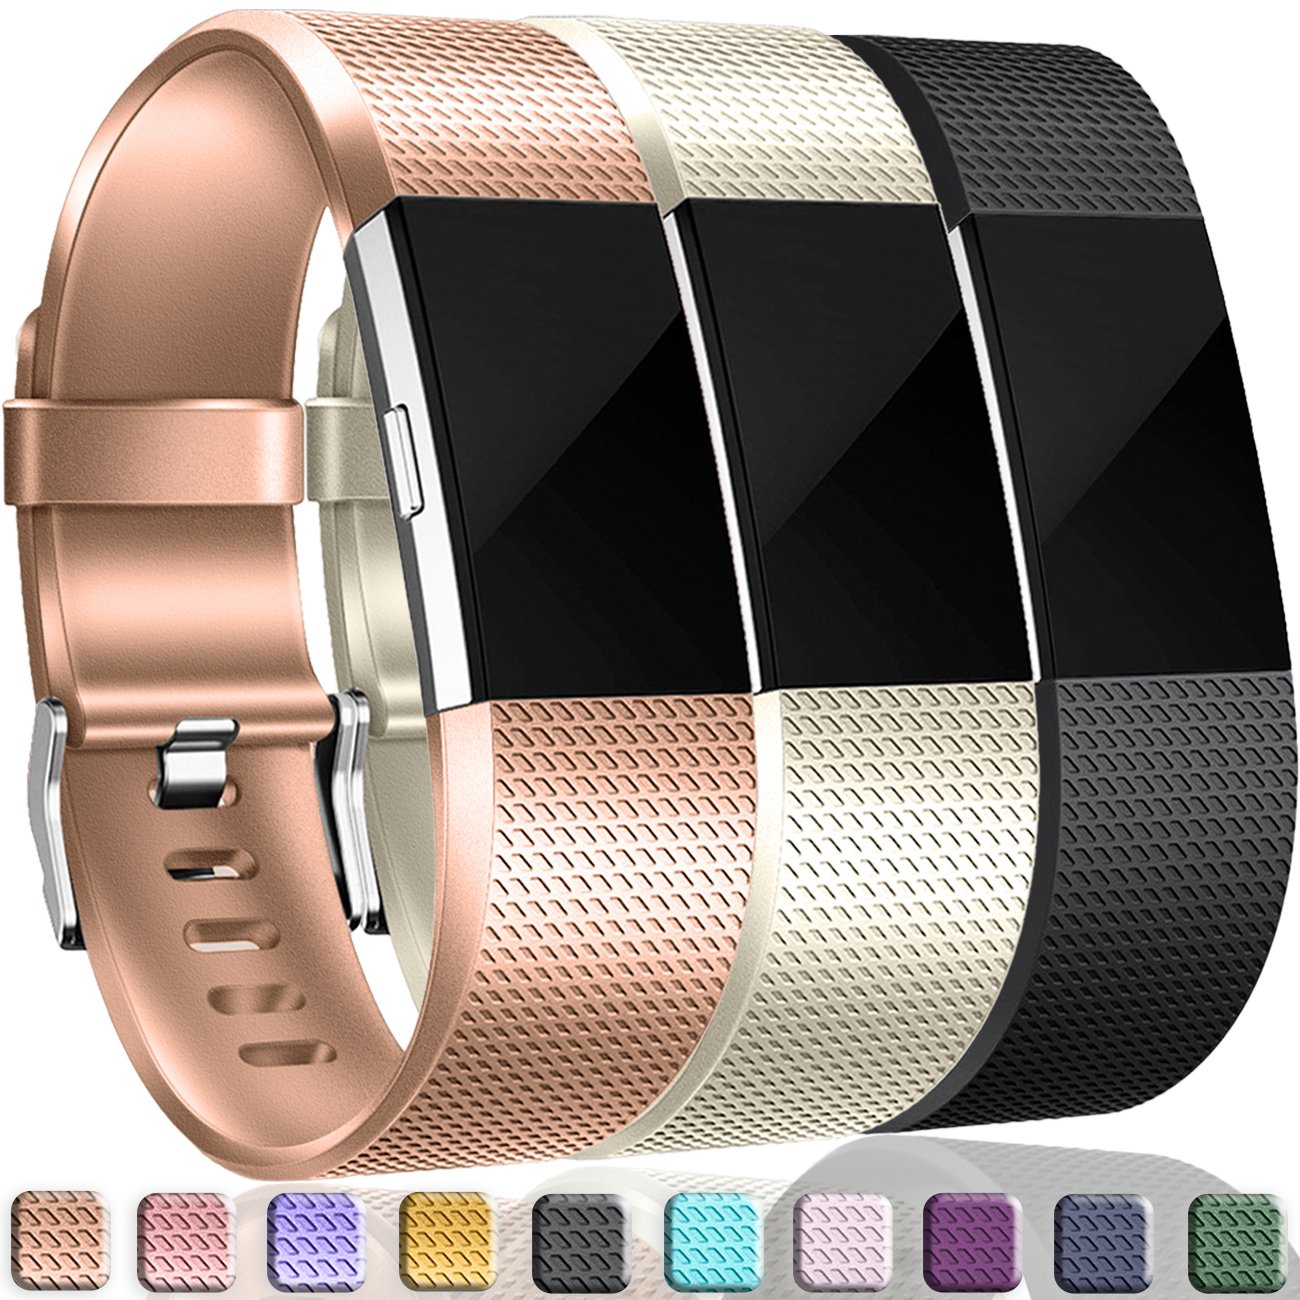 Wepro Fitbit Charge 2バンド、交換用for Fitbit Charge HR、バックル、15色、S、L 2 Large|#02-Champagne+Rose Gold+Black Colors #02-Champagne+Rose Gold+Black Colors Large B07CH8N6NR